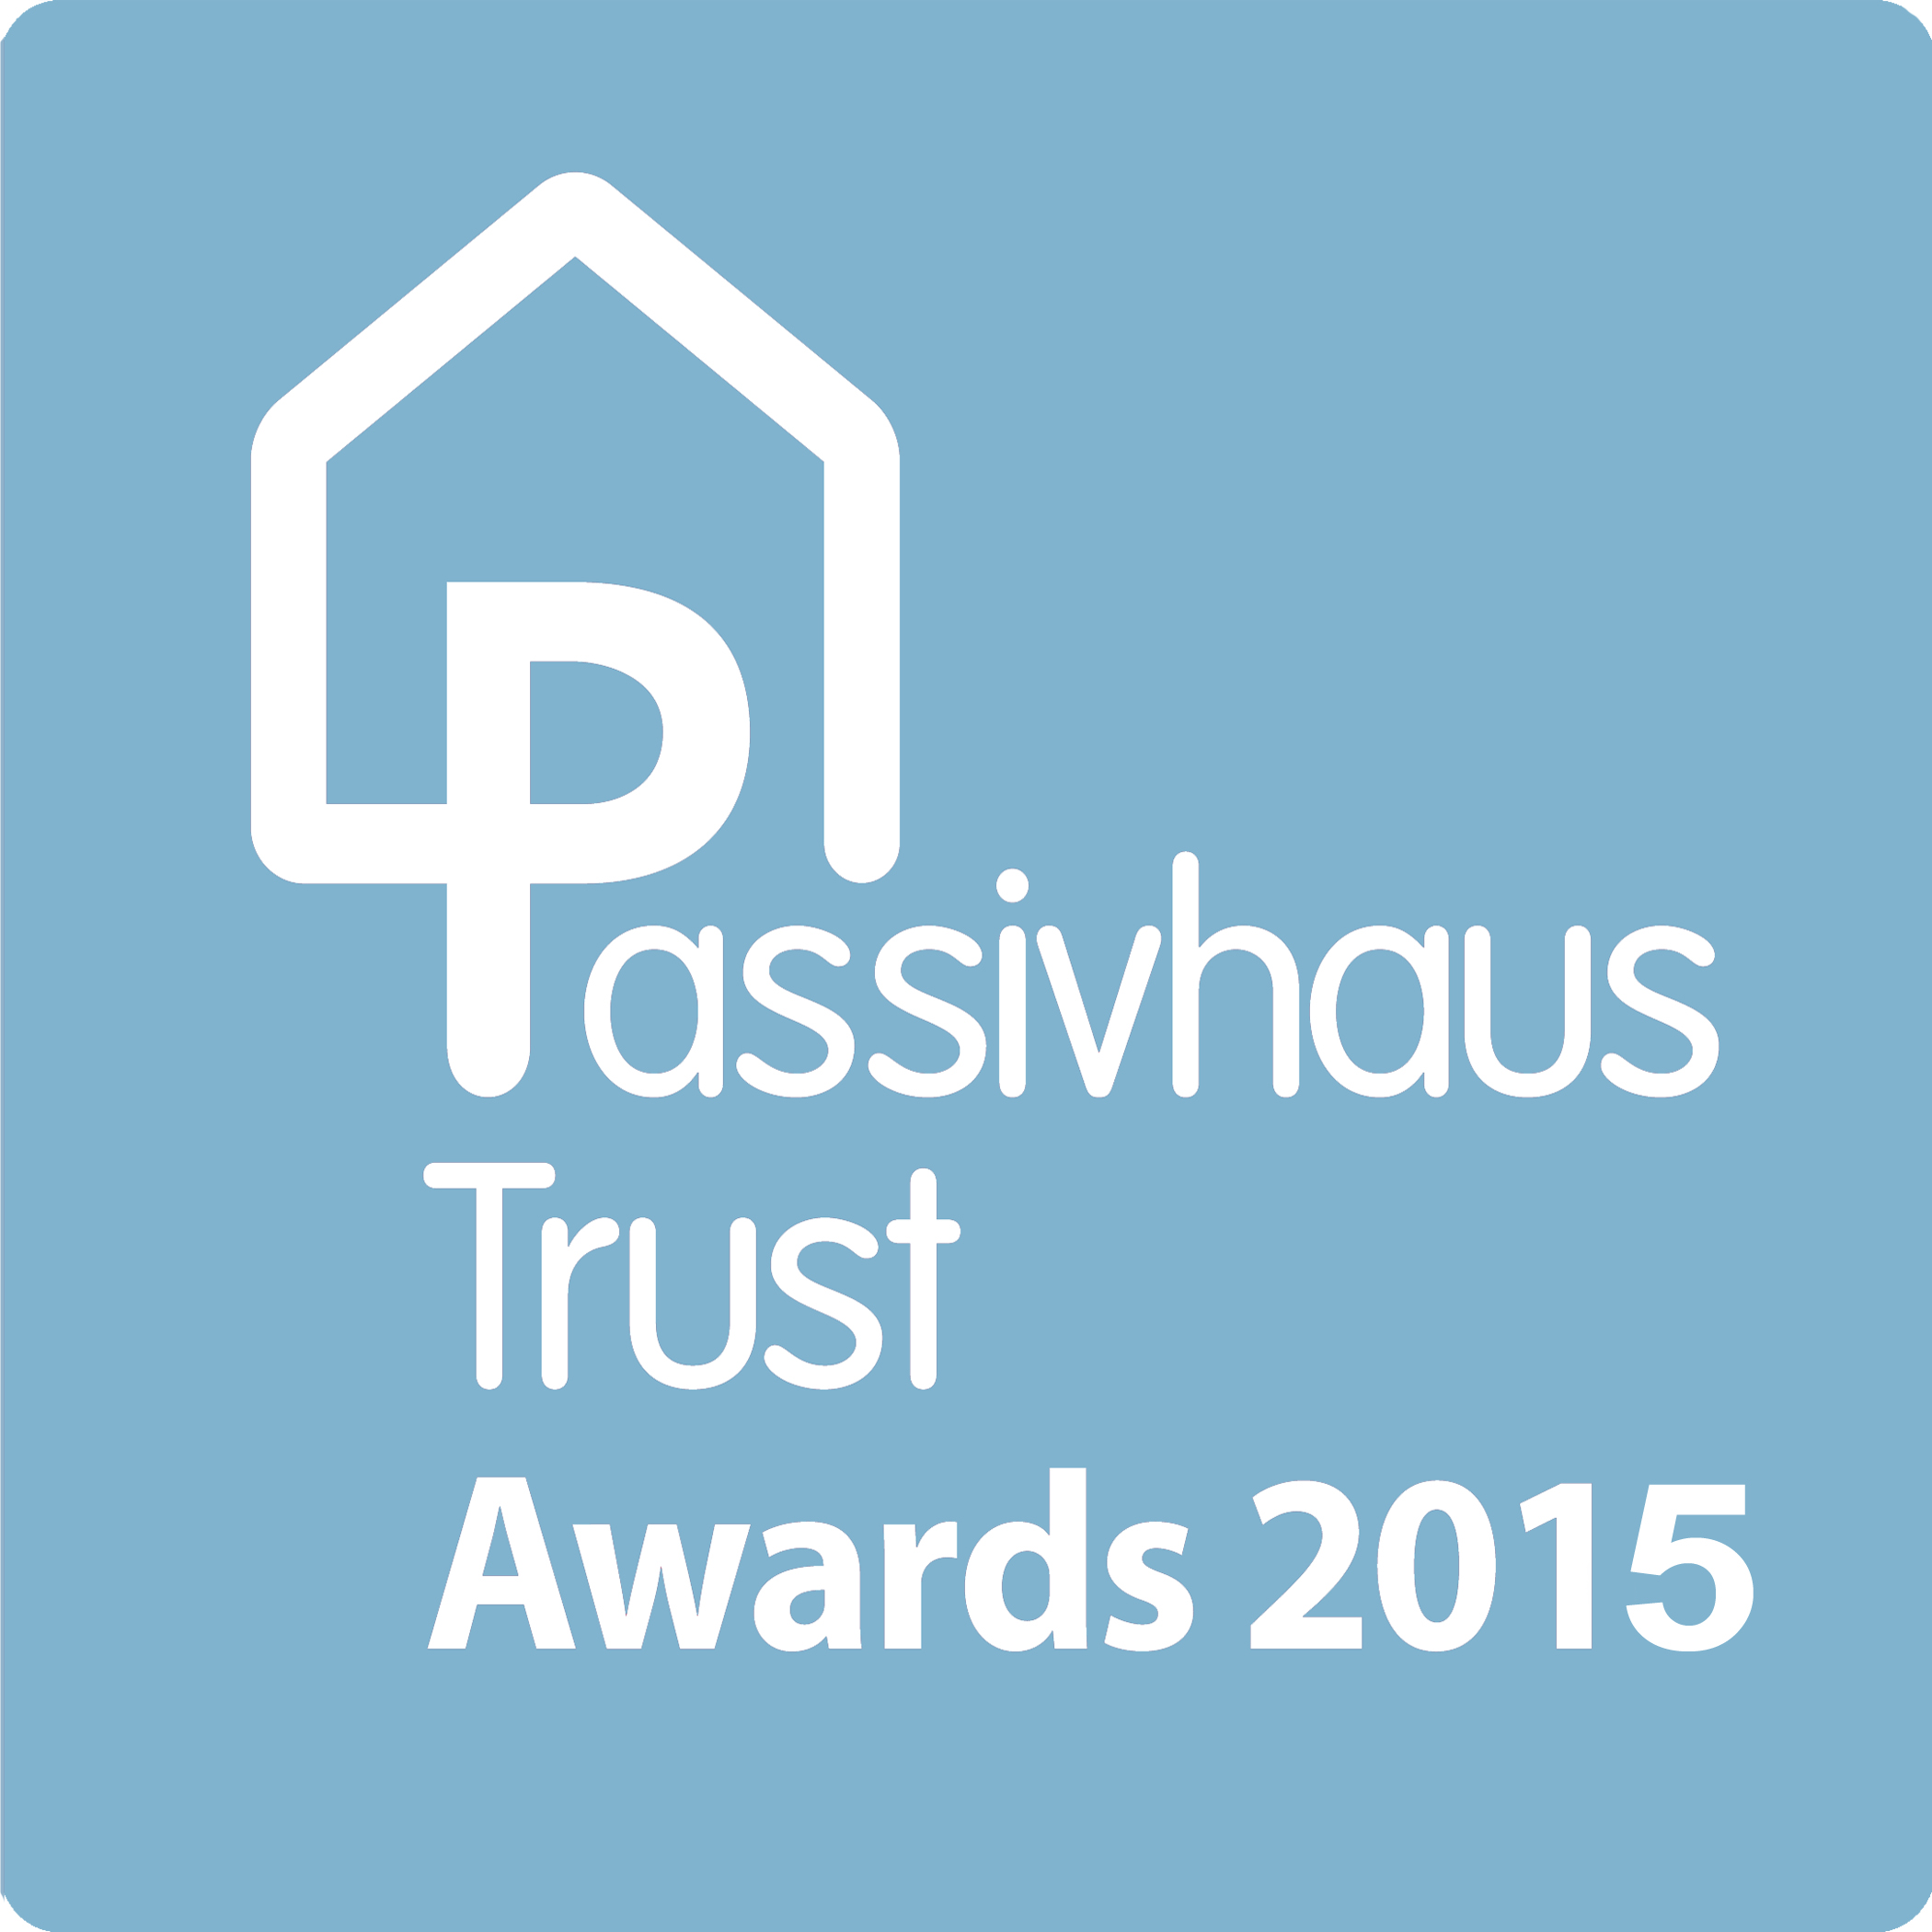 2015 UK Passivhaus Awards logo